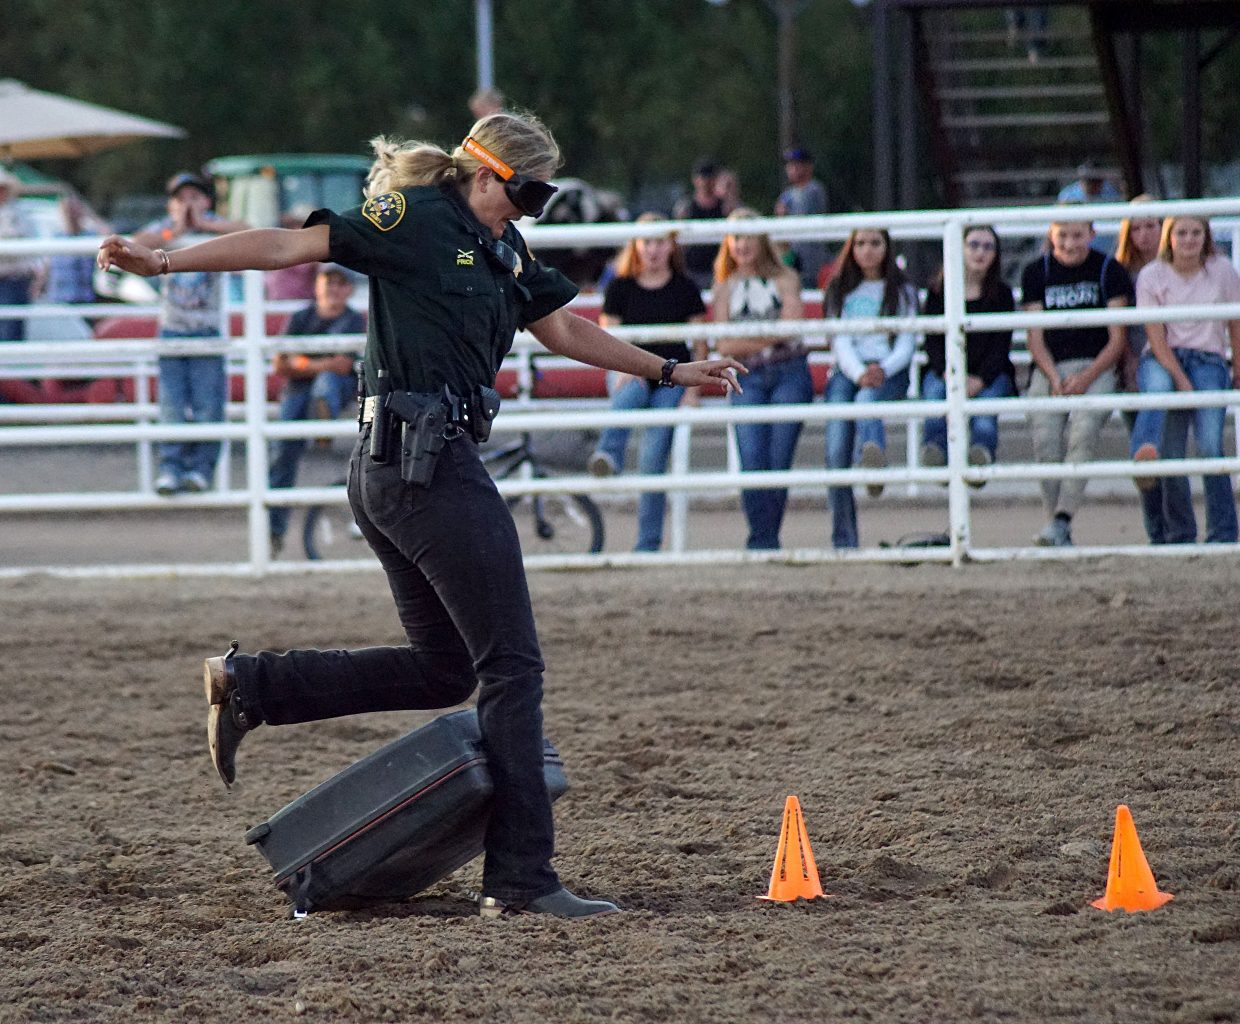 A Moffat County Sheriff's Office deputy from the mounted division entertains the rodeo crowd between events by trying to run an obstacle course while wearing